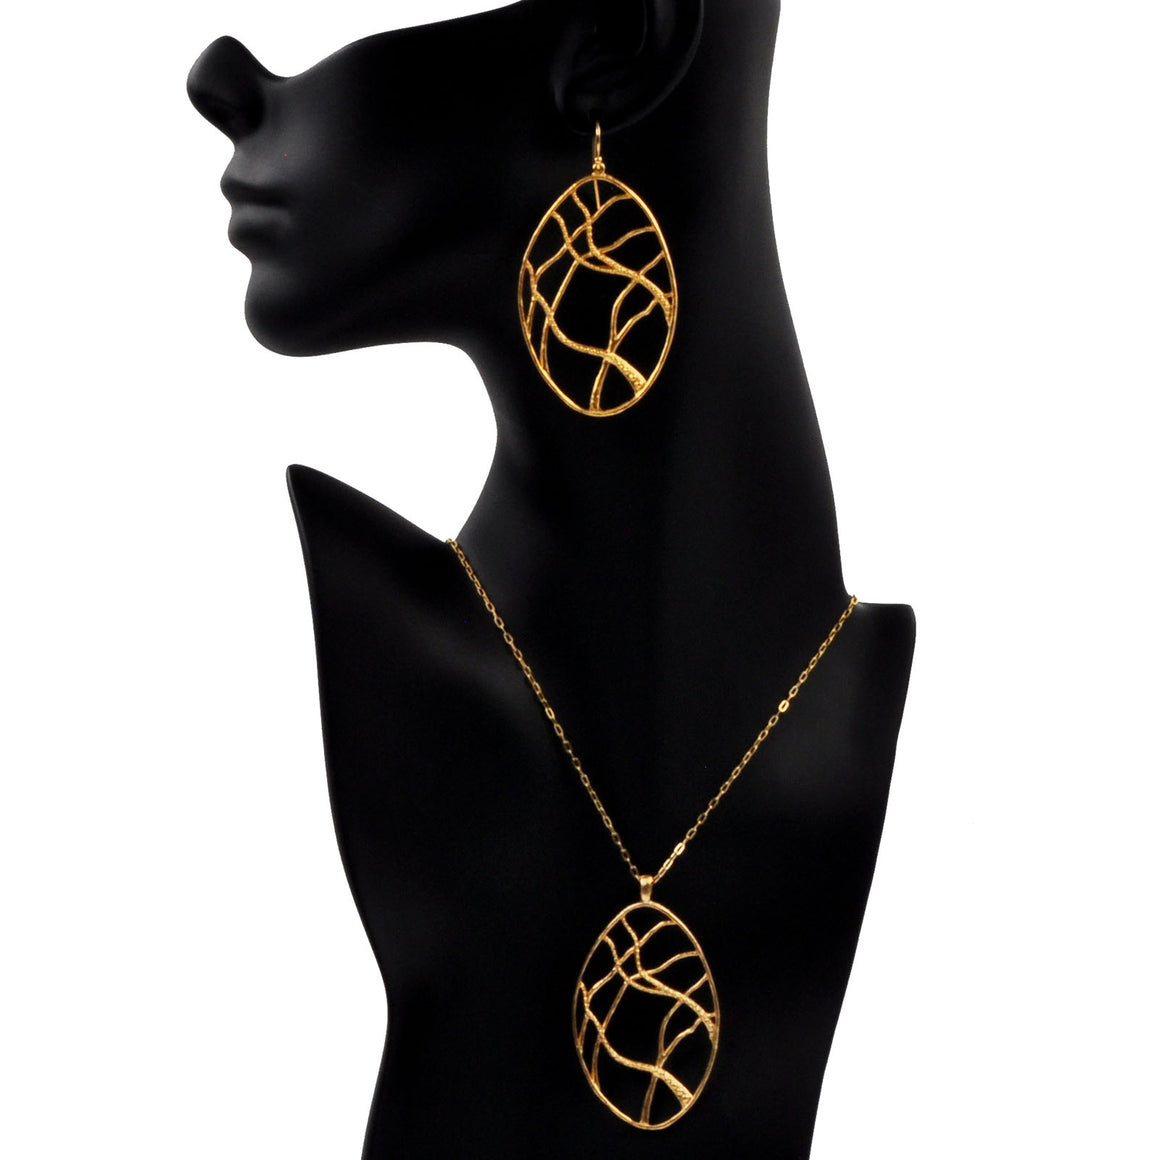 Intricate Branches Oval Necklace - 24K Gold Plated